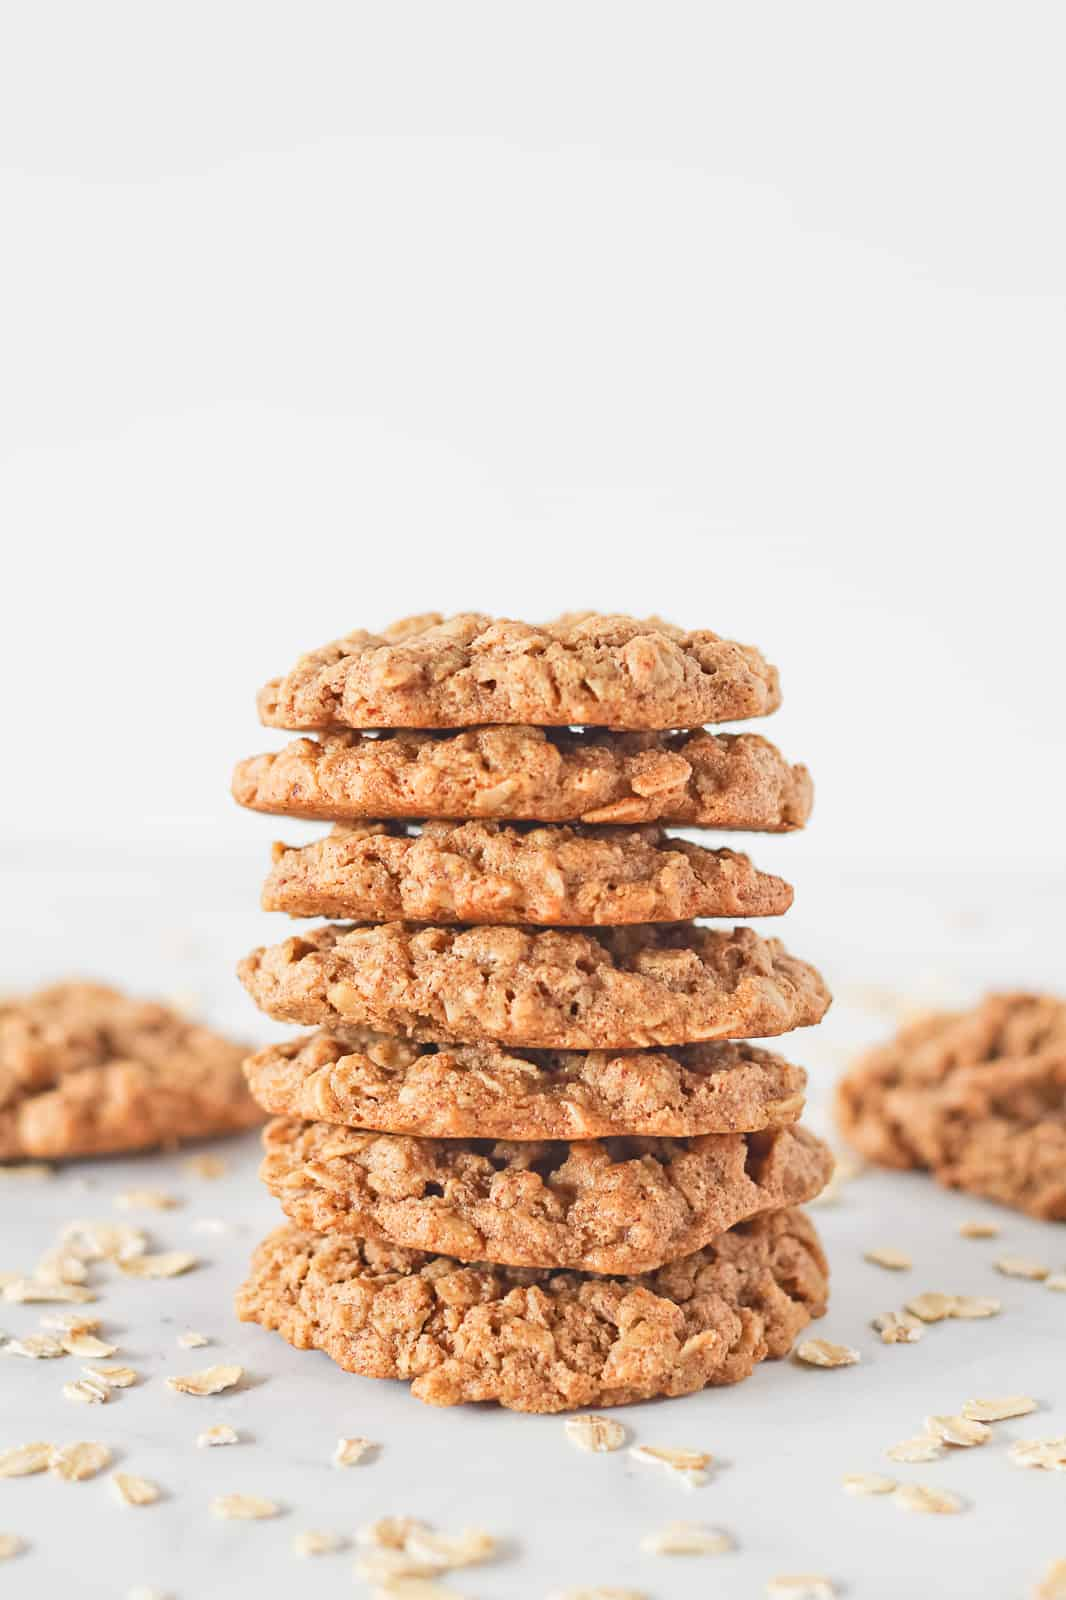 Vegan Oatmeal Cookies in a stack of seven surrounded by more cookies and dry oats.